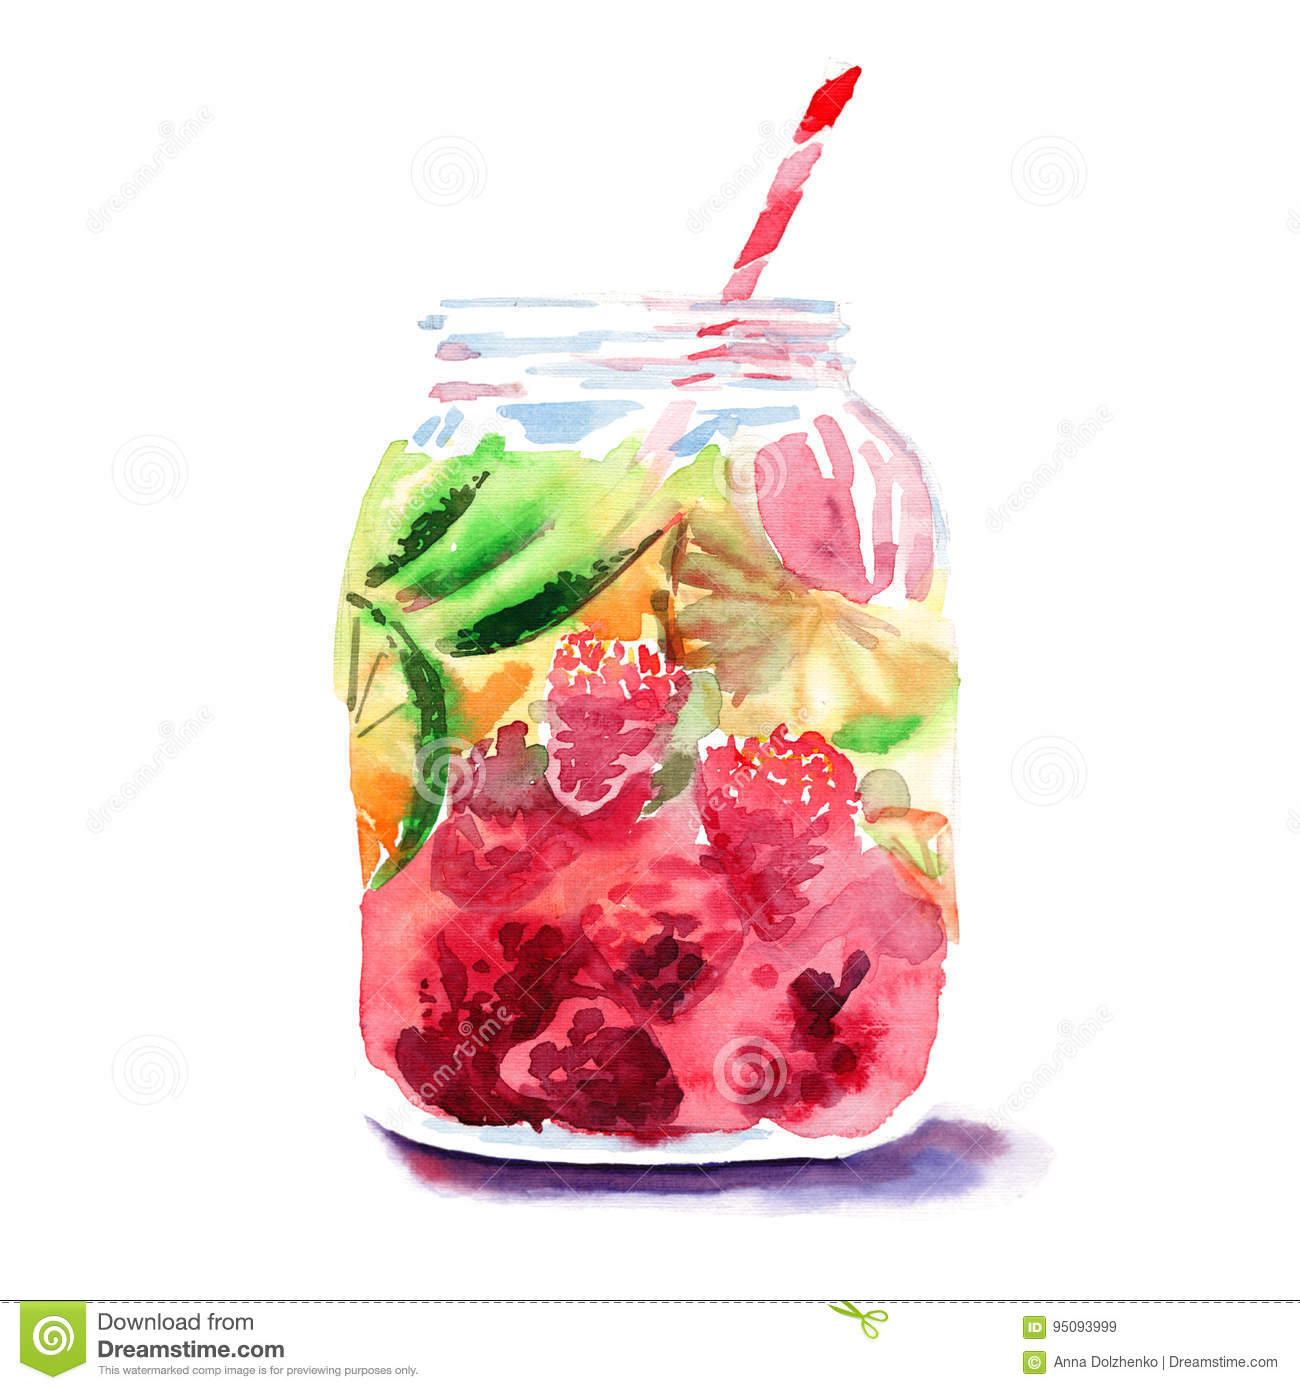 Beautiful bright fresh tasty juicy delicious lovely cute colorful detox bank with red mulberries, ripe green limes and oranges and